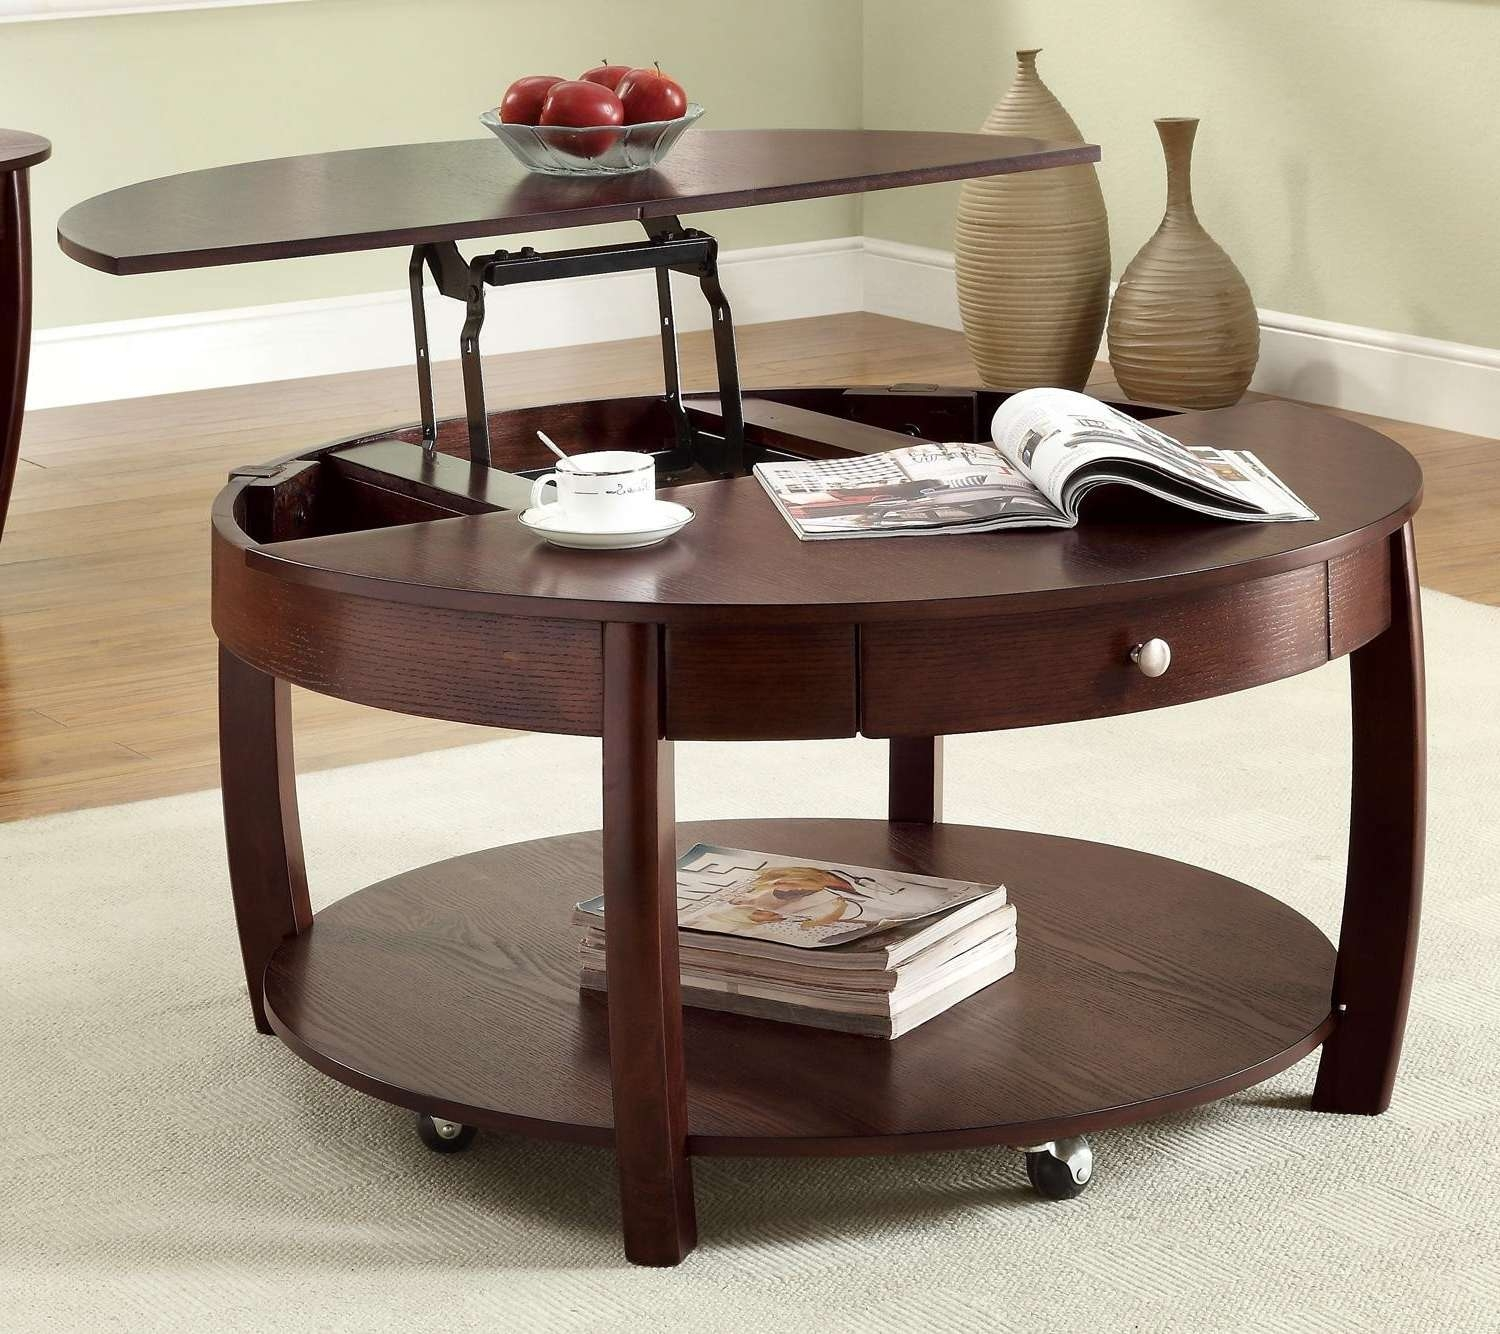 Irresistible Coffee Tables Lift Coffee Table Ashley Furniture That Lifts Cheap Lift Cheap Lift Coffee Tables Coffee Table Lift Wheels Coffee Table Lift Oak houzz 01 Coffee Table Lift Top